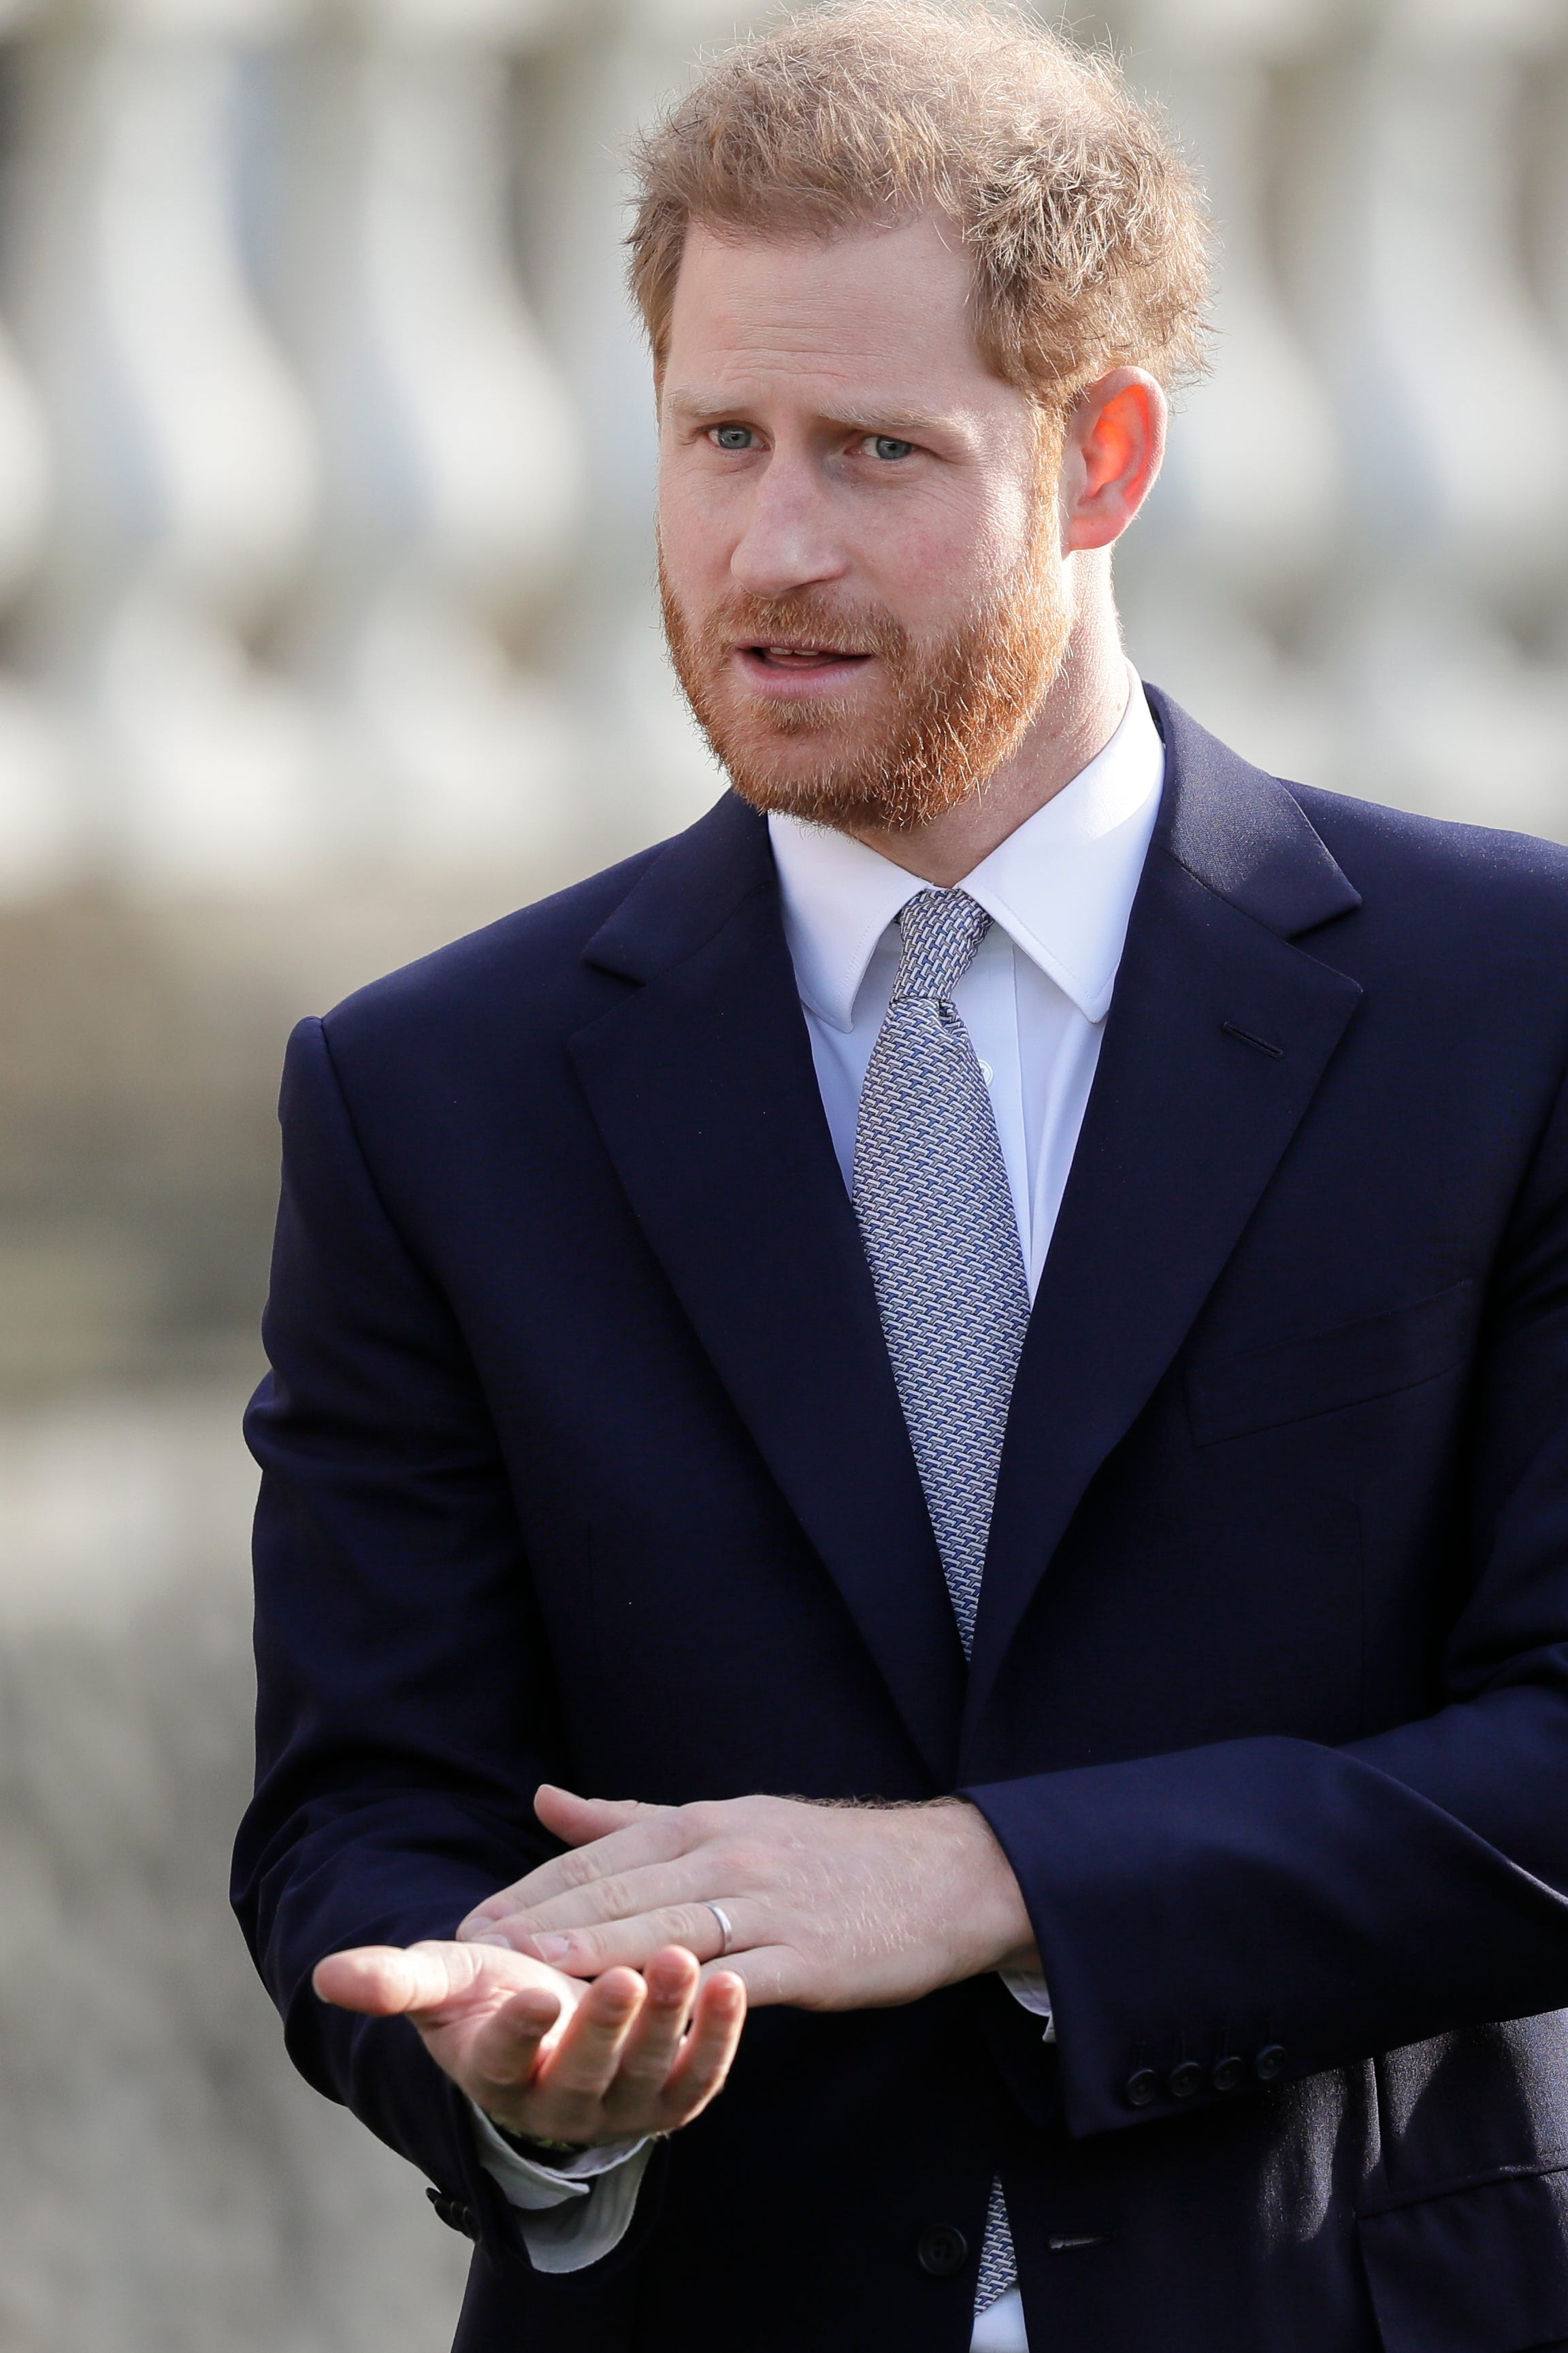 Prince Harry joins coaching startup as chief impact officer 2